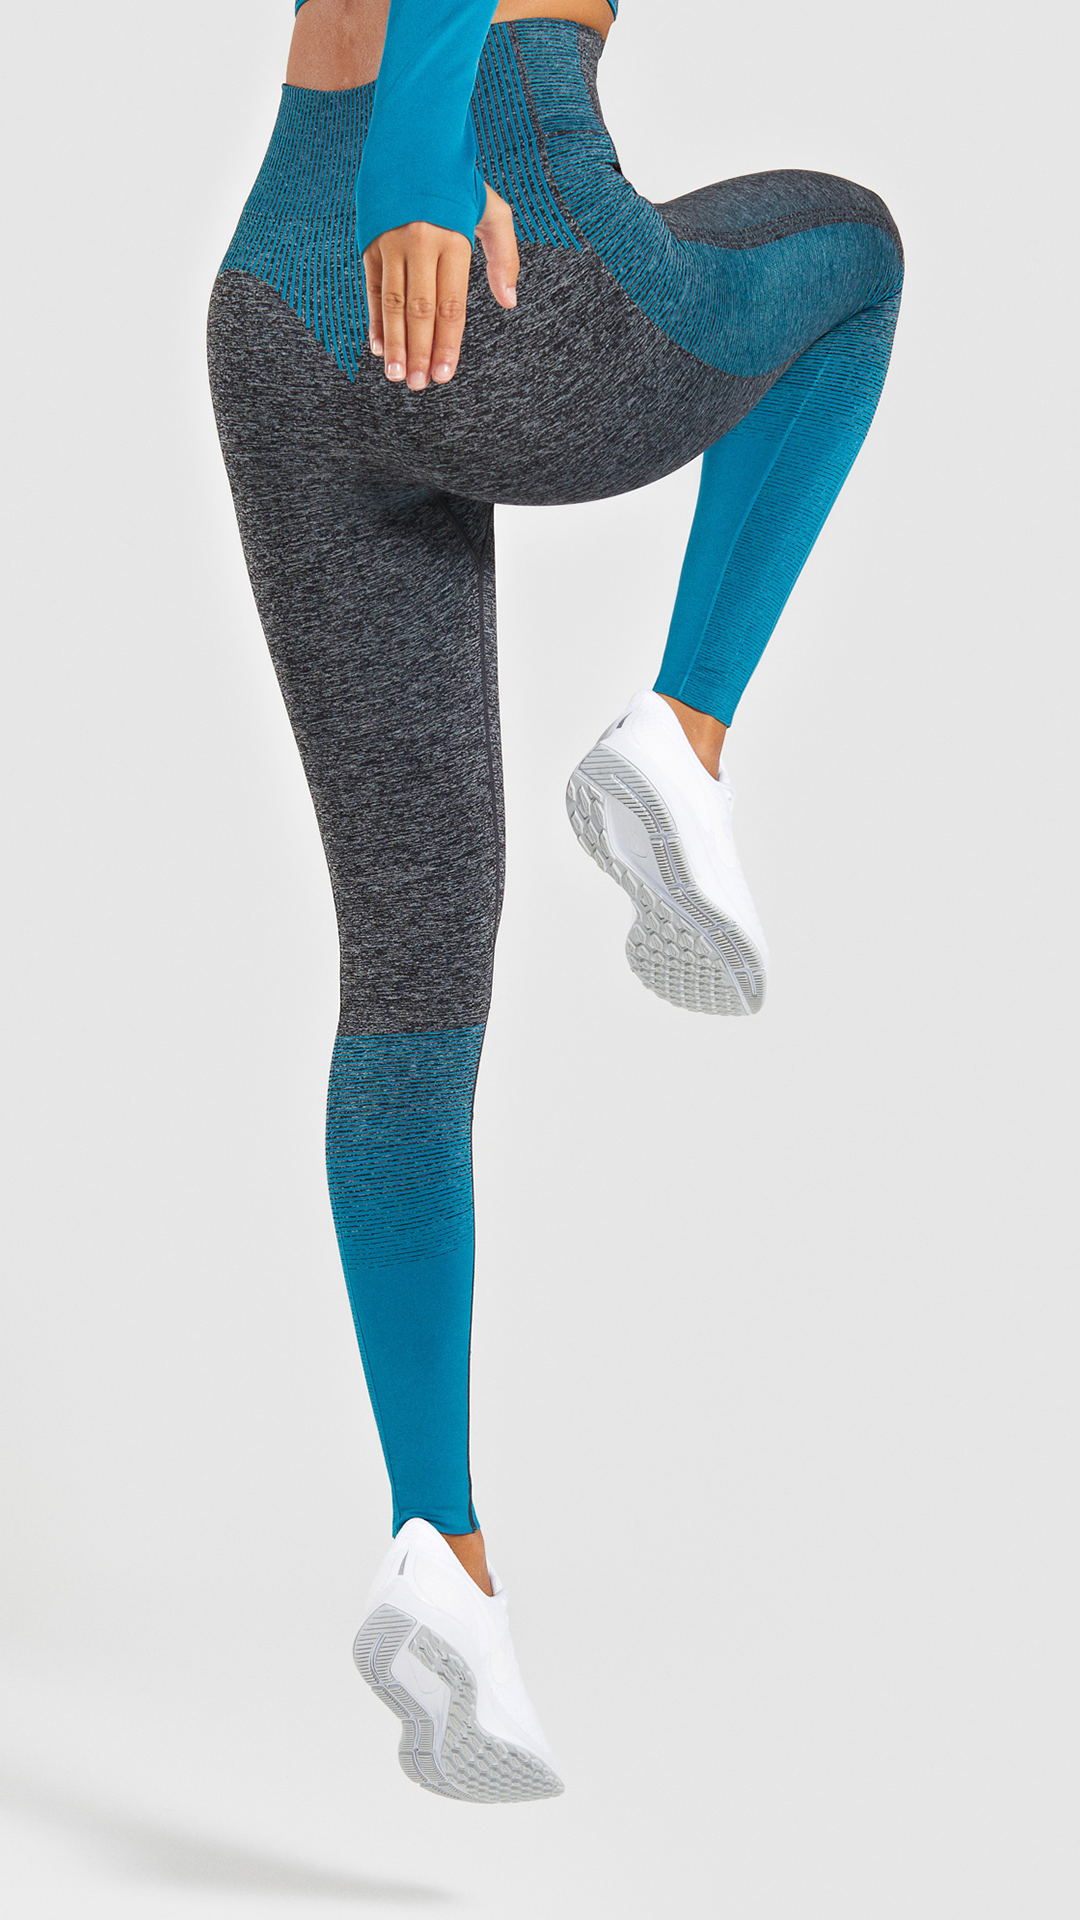 945abe9934c325 Amplify your style. Colour gradient stripes and contrast panels down the  leg with glute and leg enhancing seamless design. #Gymshark #Leggings  #HighWaisted ...